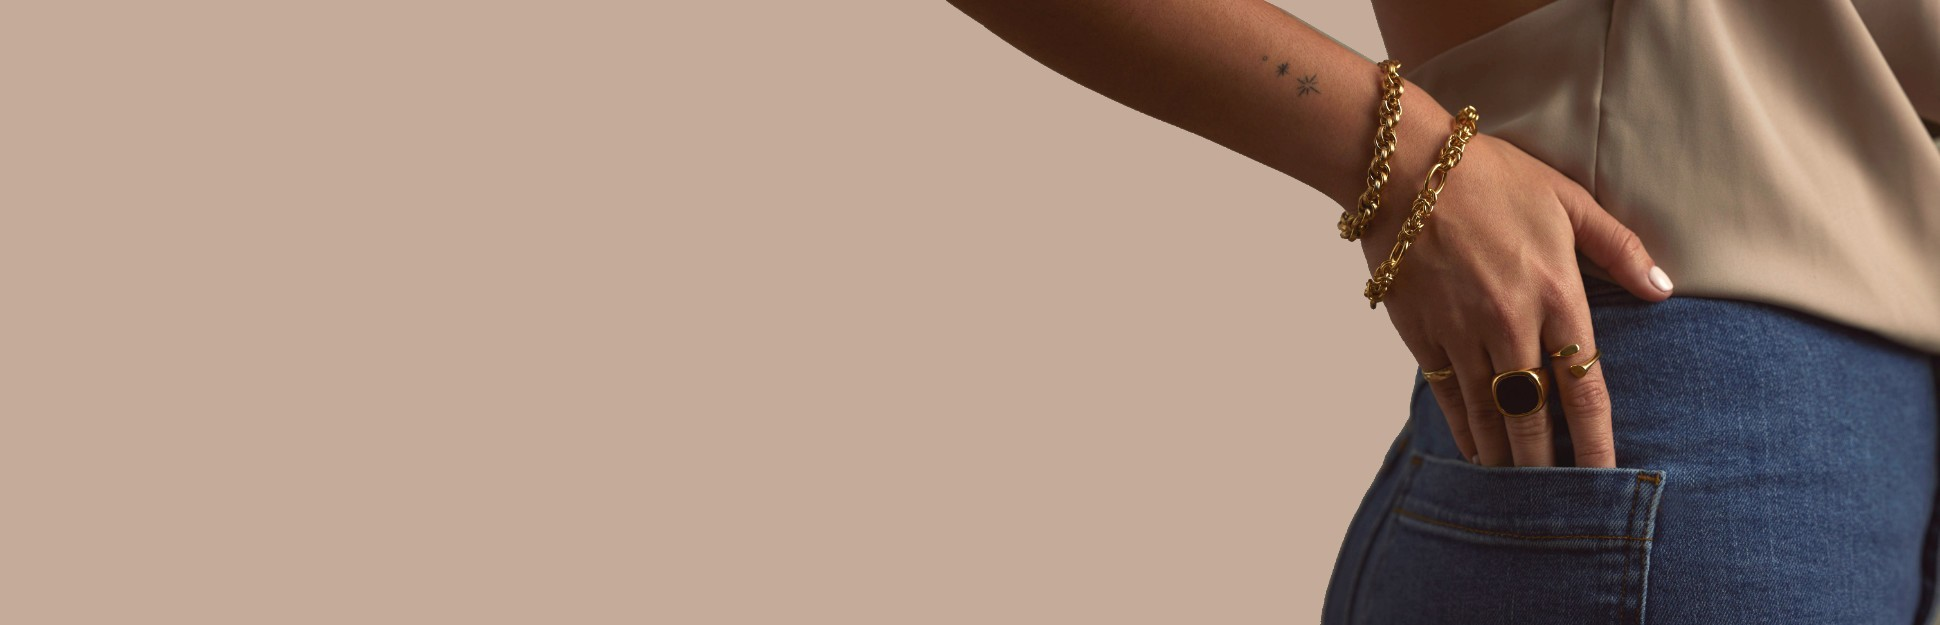 Bracelets and anklents made of 925 sterling silver and 18k gold plating   Holibia.com